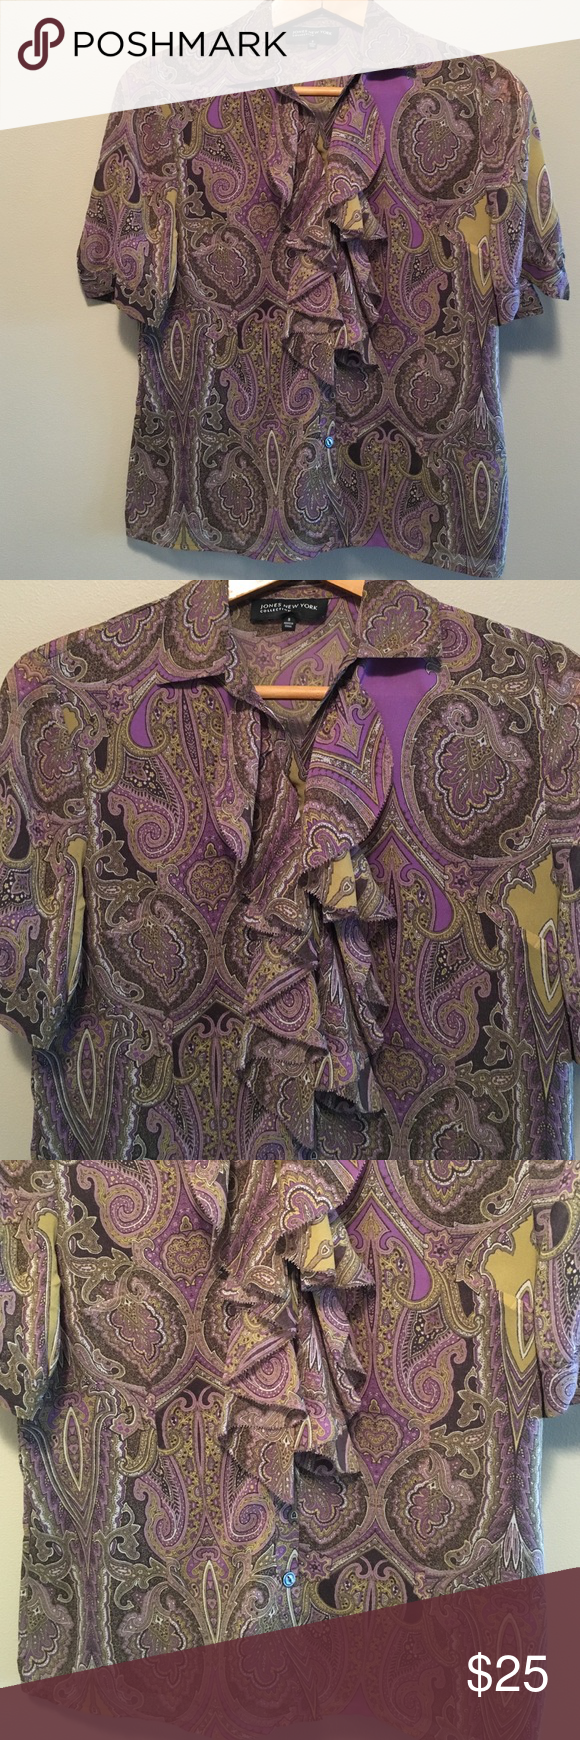 """Jones of New York 8 silk paisley ruffle blouse Beautiful and feminine Jones of New York 100% silk paisley, button down, ruffle blouse in a size 8. Dimensions taken while garment is laying flat: 16"""" across shoulders, 38"""" bust, 36"""" waist, 42"""" hips, sleeve length 10"""" and length from shoulder to bottom hem 22"""".  Front of blouse is double lined but back is not so it is slightly transparent. you may want to wear a camisole or tank underneath. Fabric care instructions dry clean only. Jones New York…"""